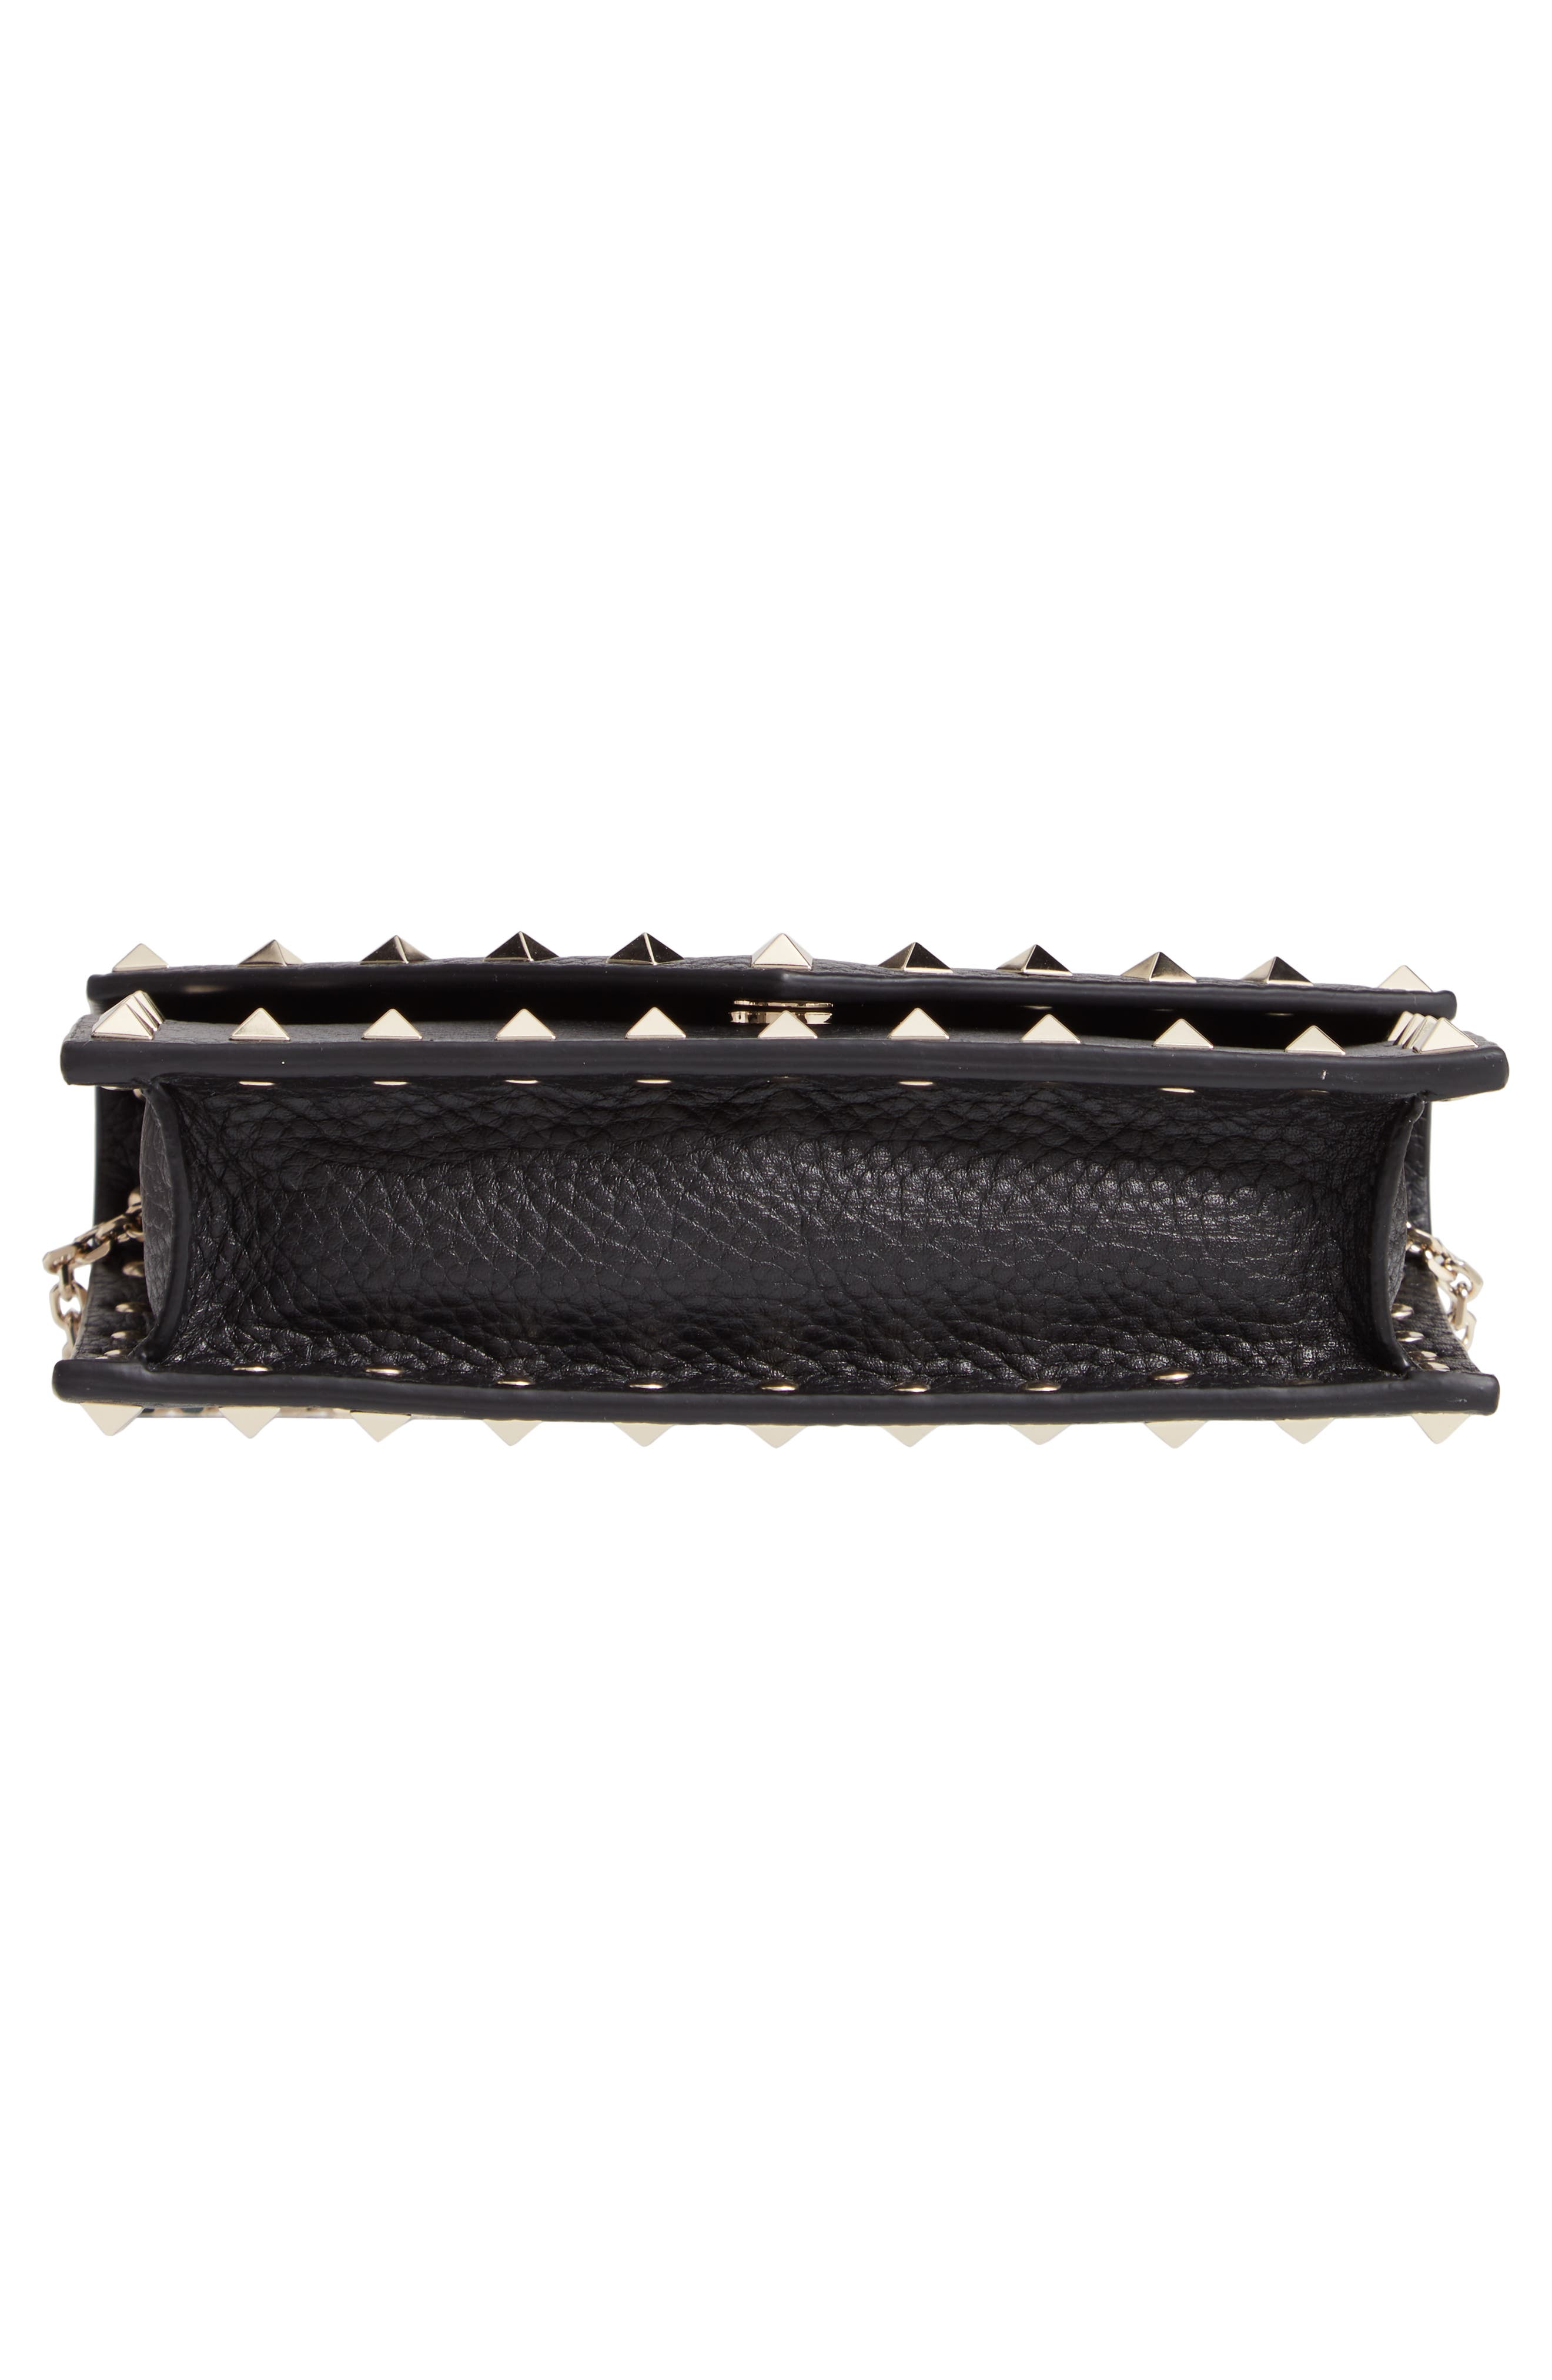 VALENTINO GARAVANI,                             Rockstud Calfskin Leather Envelope Pouch,                             Alternate thumbnail 6, color,                             NERO